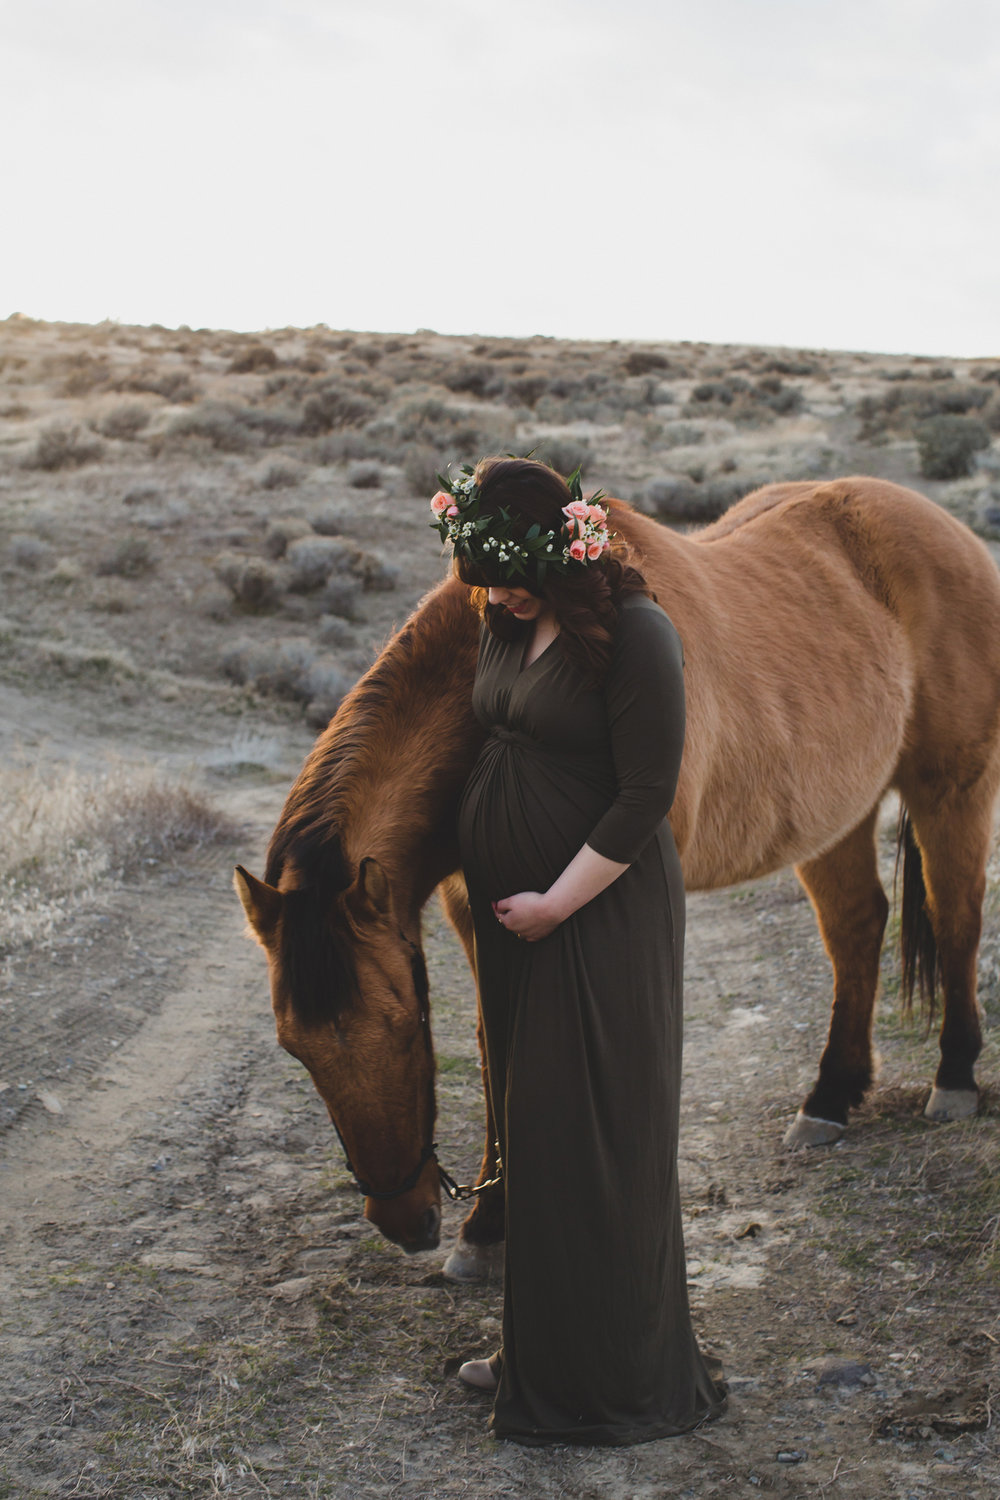 Tri Cities Maternity photographer_tri cities maternity_richland photographer_kennewick photographer_maternity session_red mountain_mama to be_parents to be_tri cities family session_red mountain trails_sage brush_horse_desert session_sunset session_17